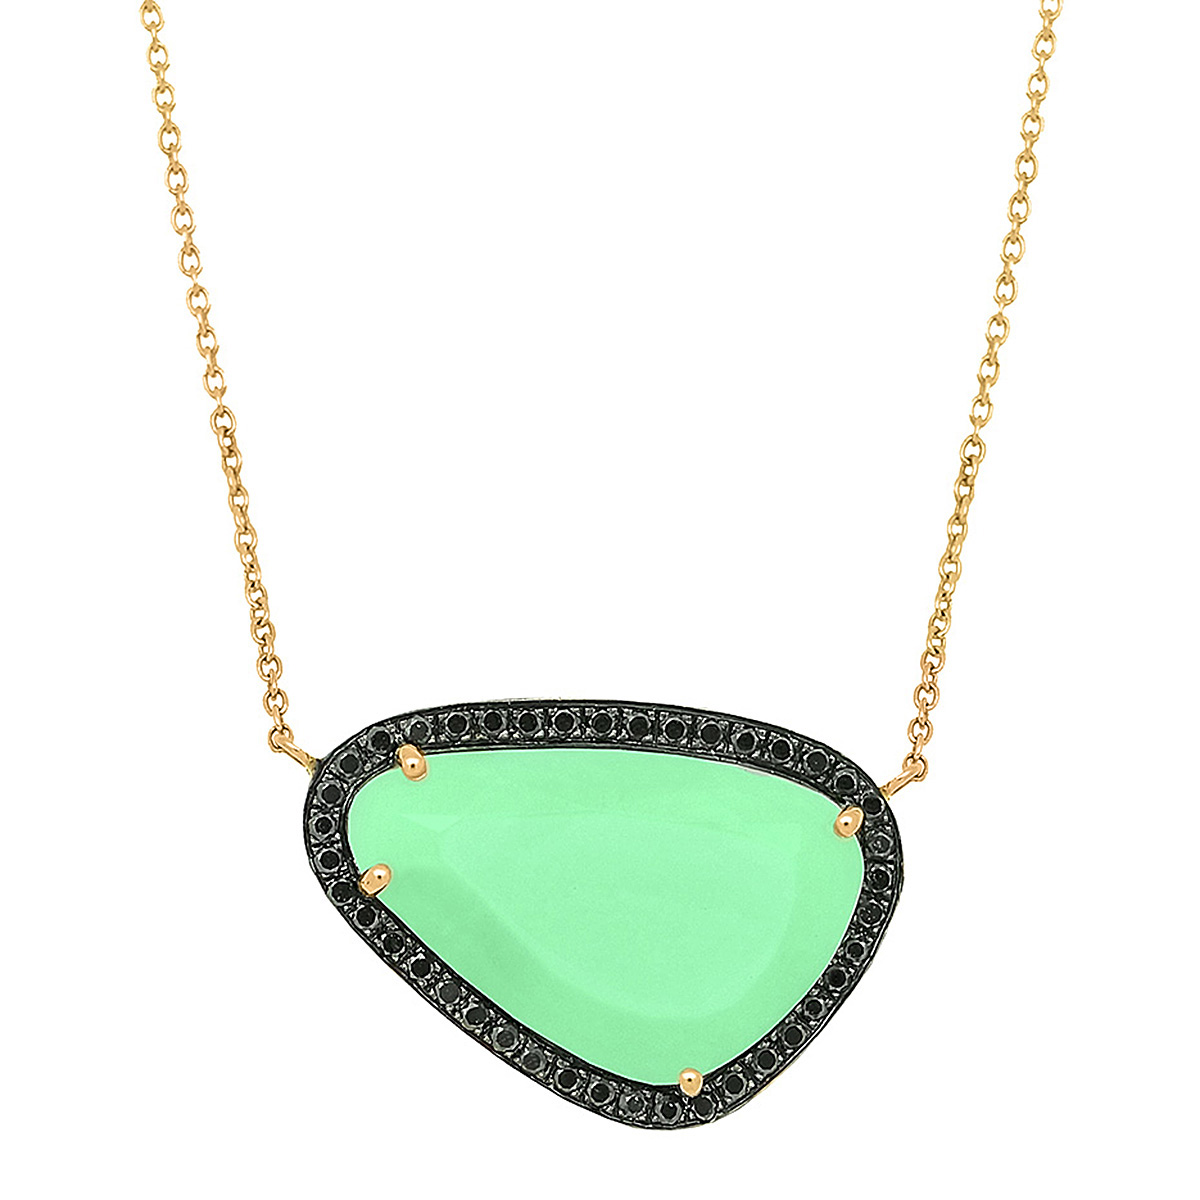 aqua jade aquamarine necklace chalcedony chrysoprase new products pearl and